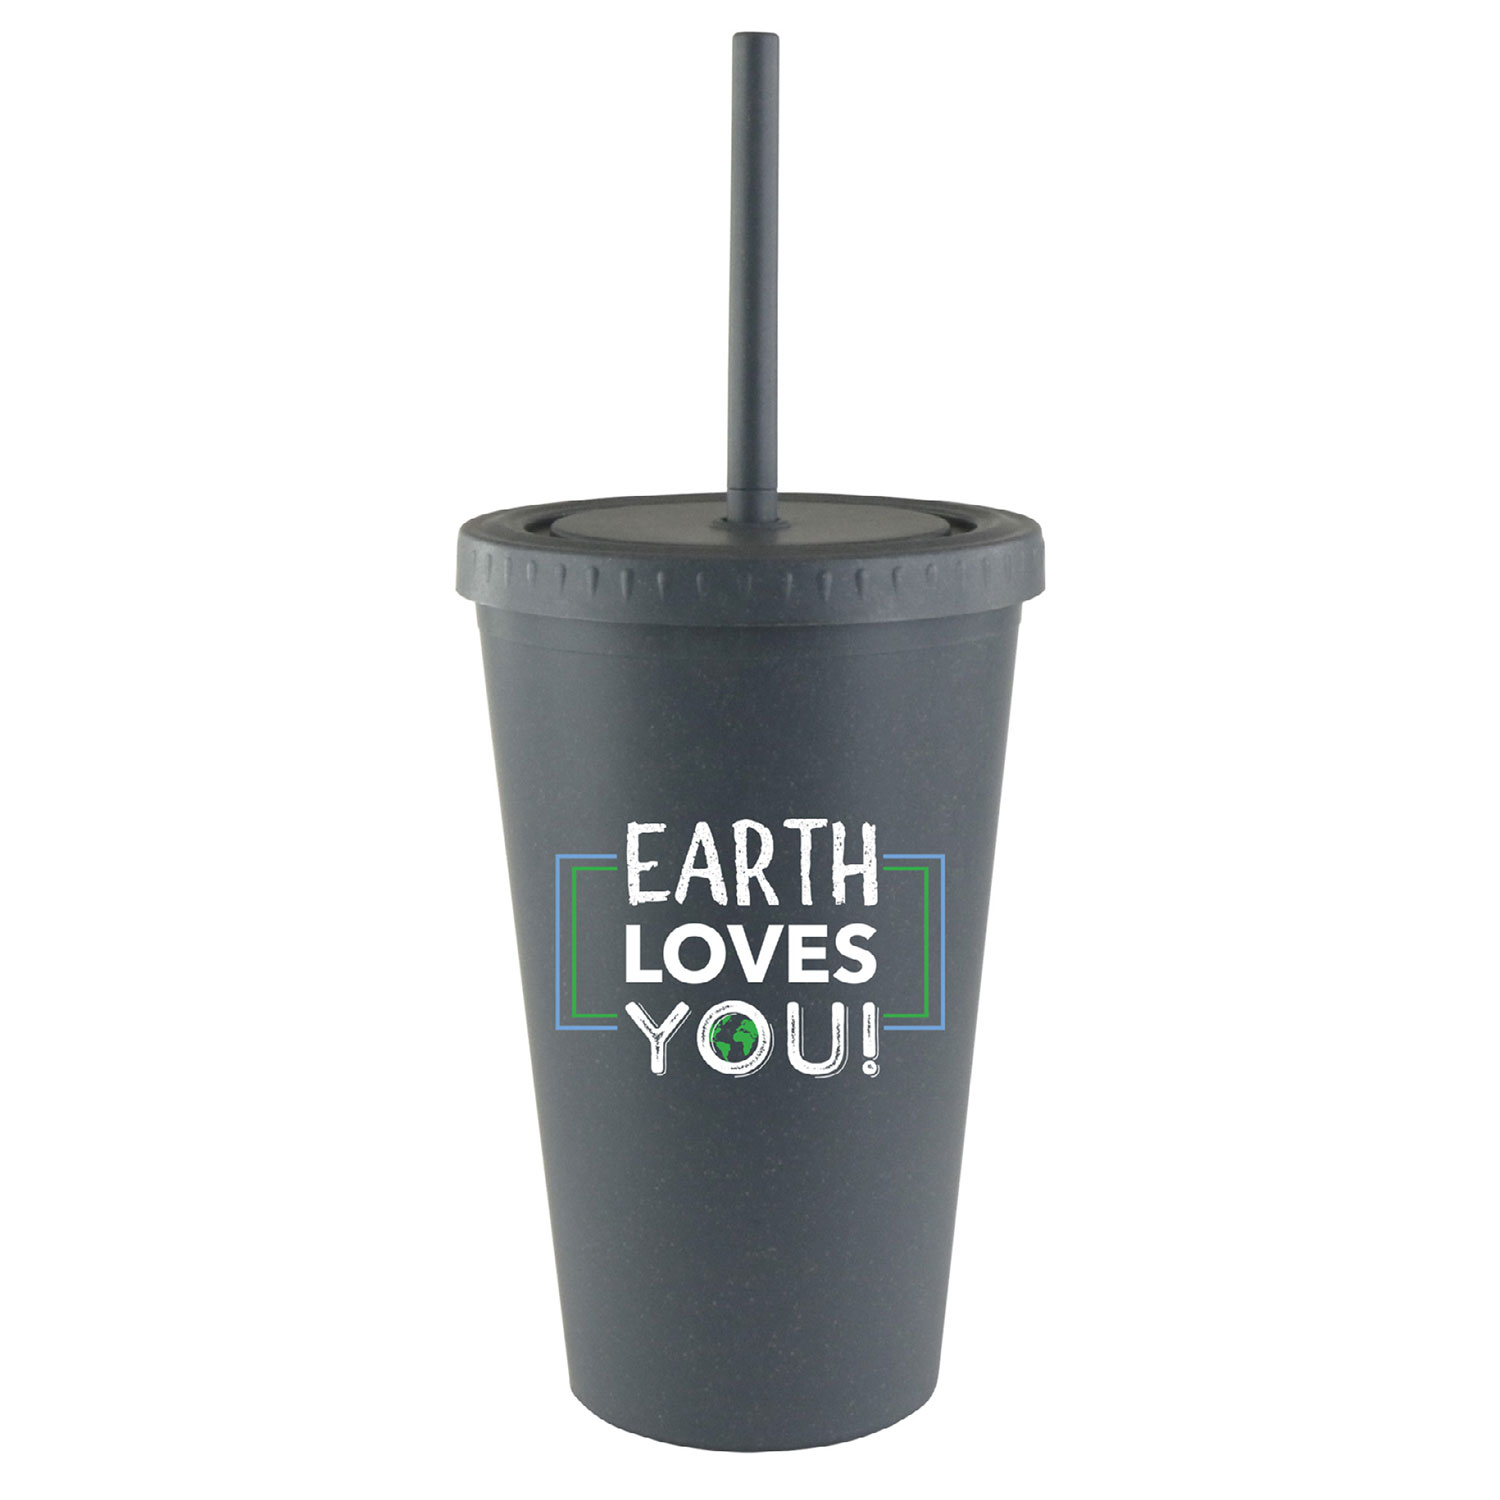 straw cup with lid made of eco-friendly wheat straw